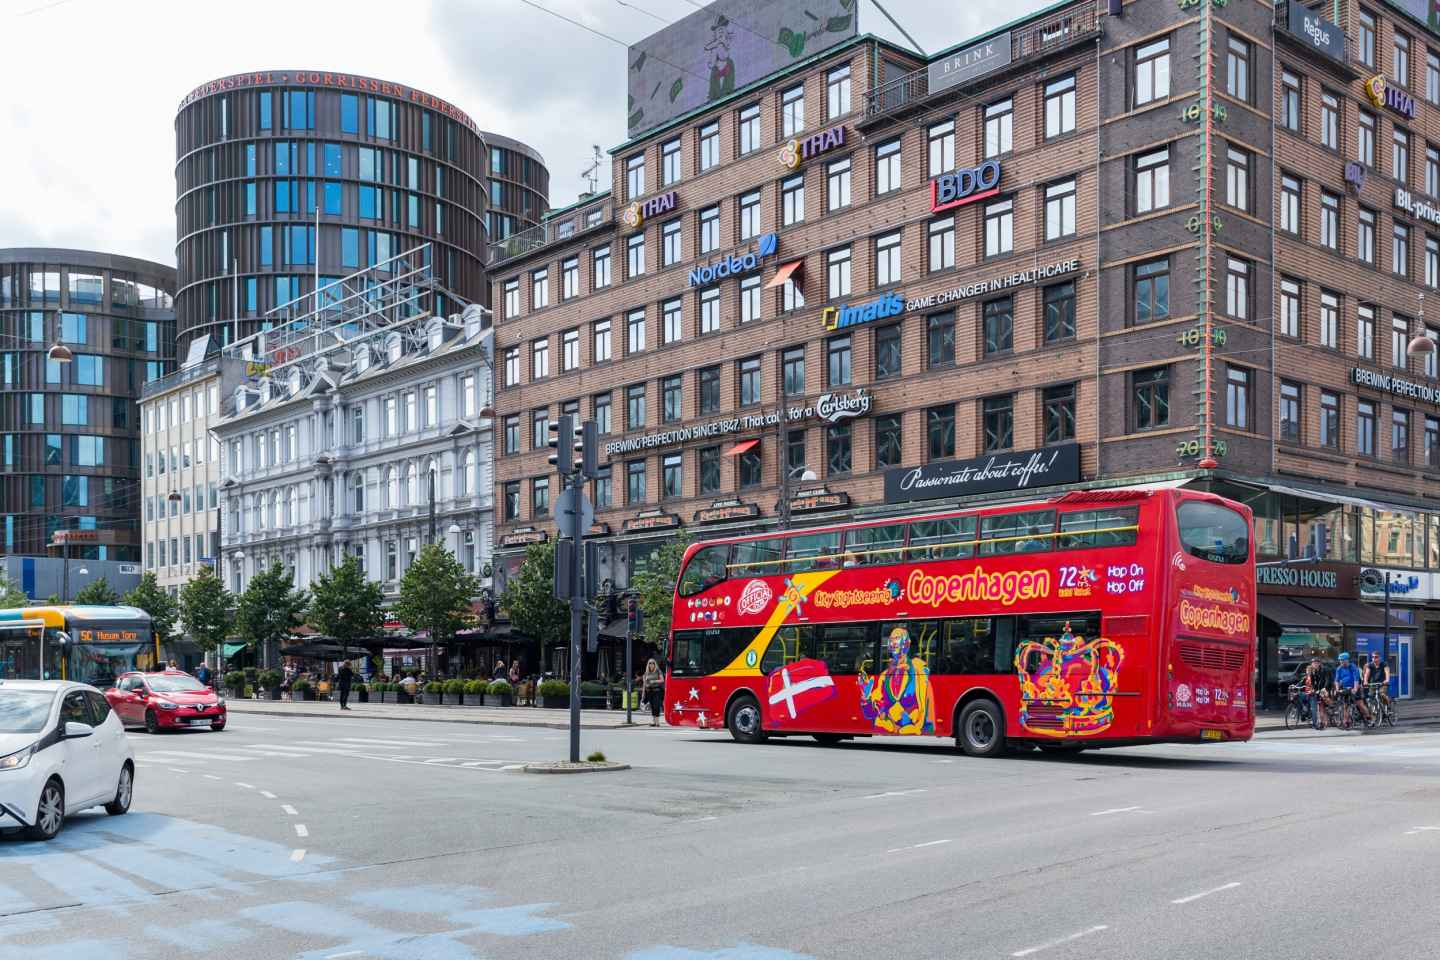 Kopenhagen: Tickets für den Hop-On/Hop-Off-Bus